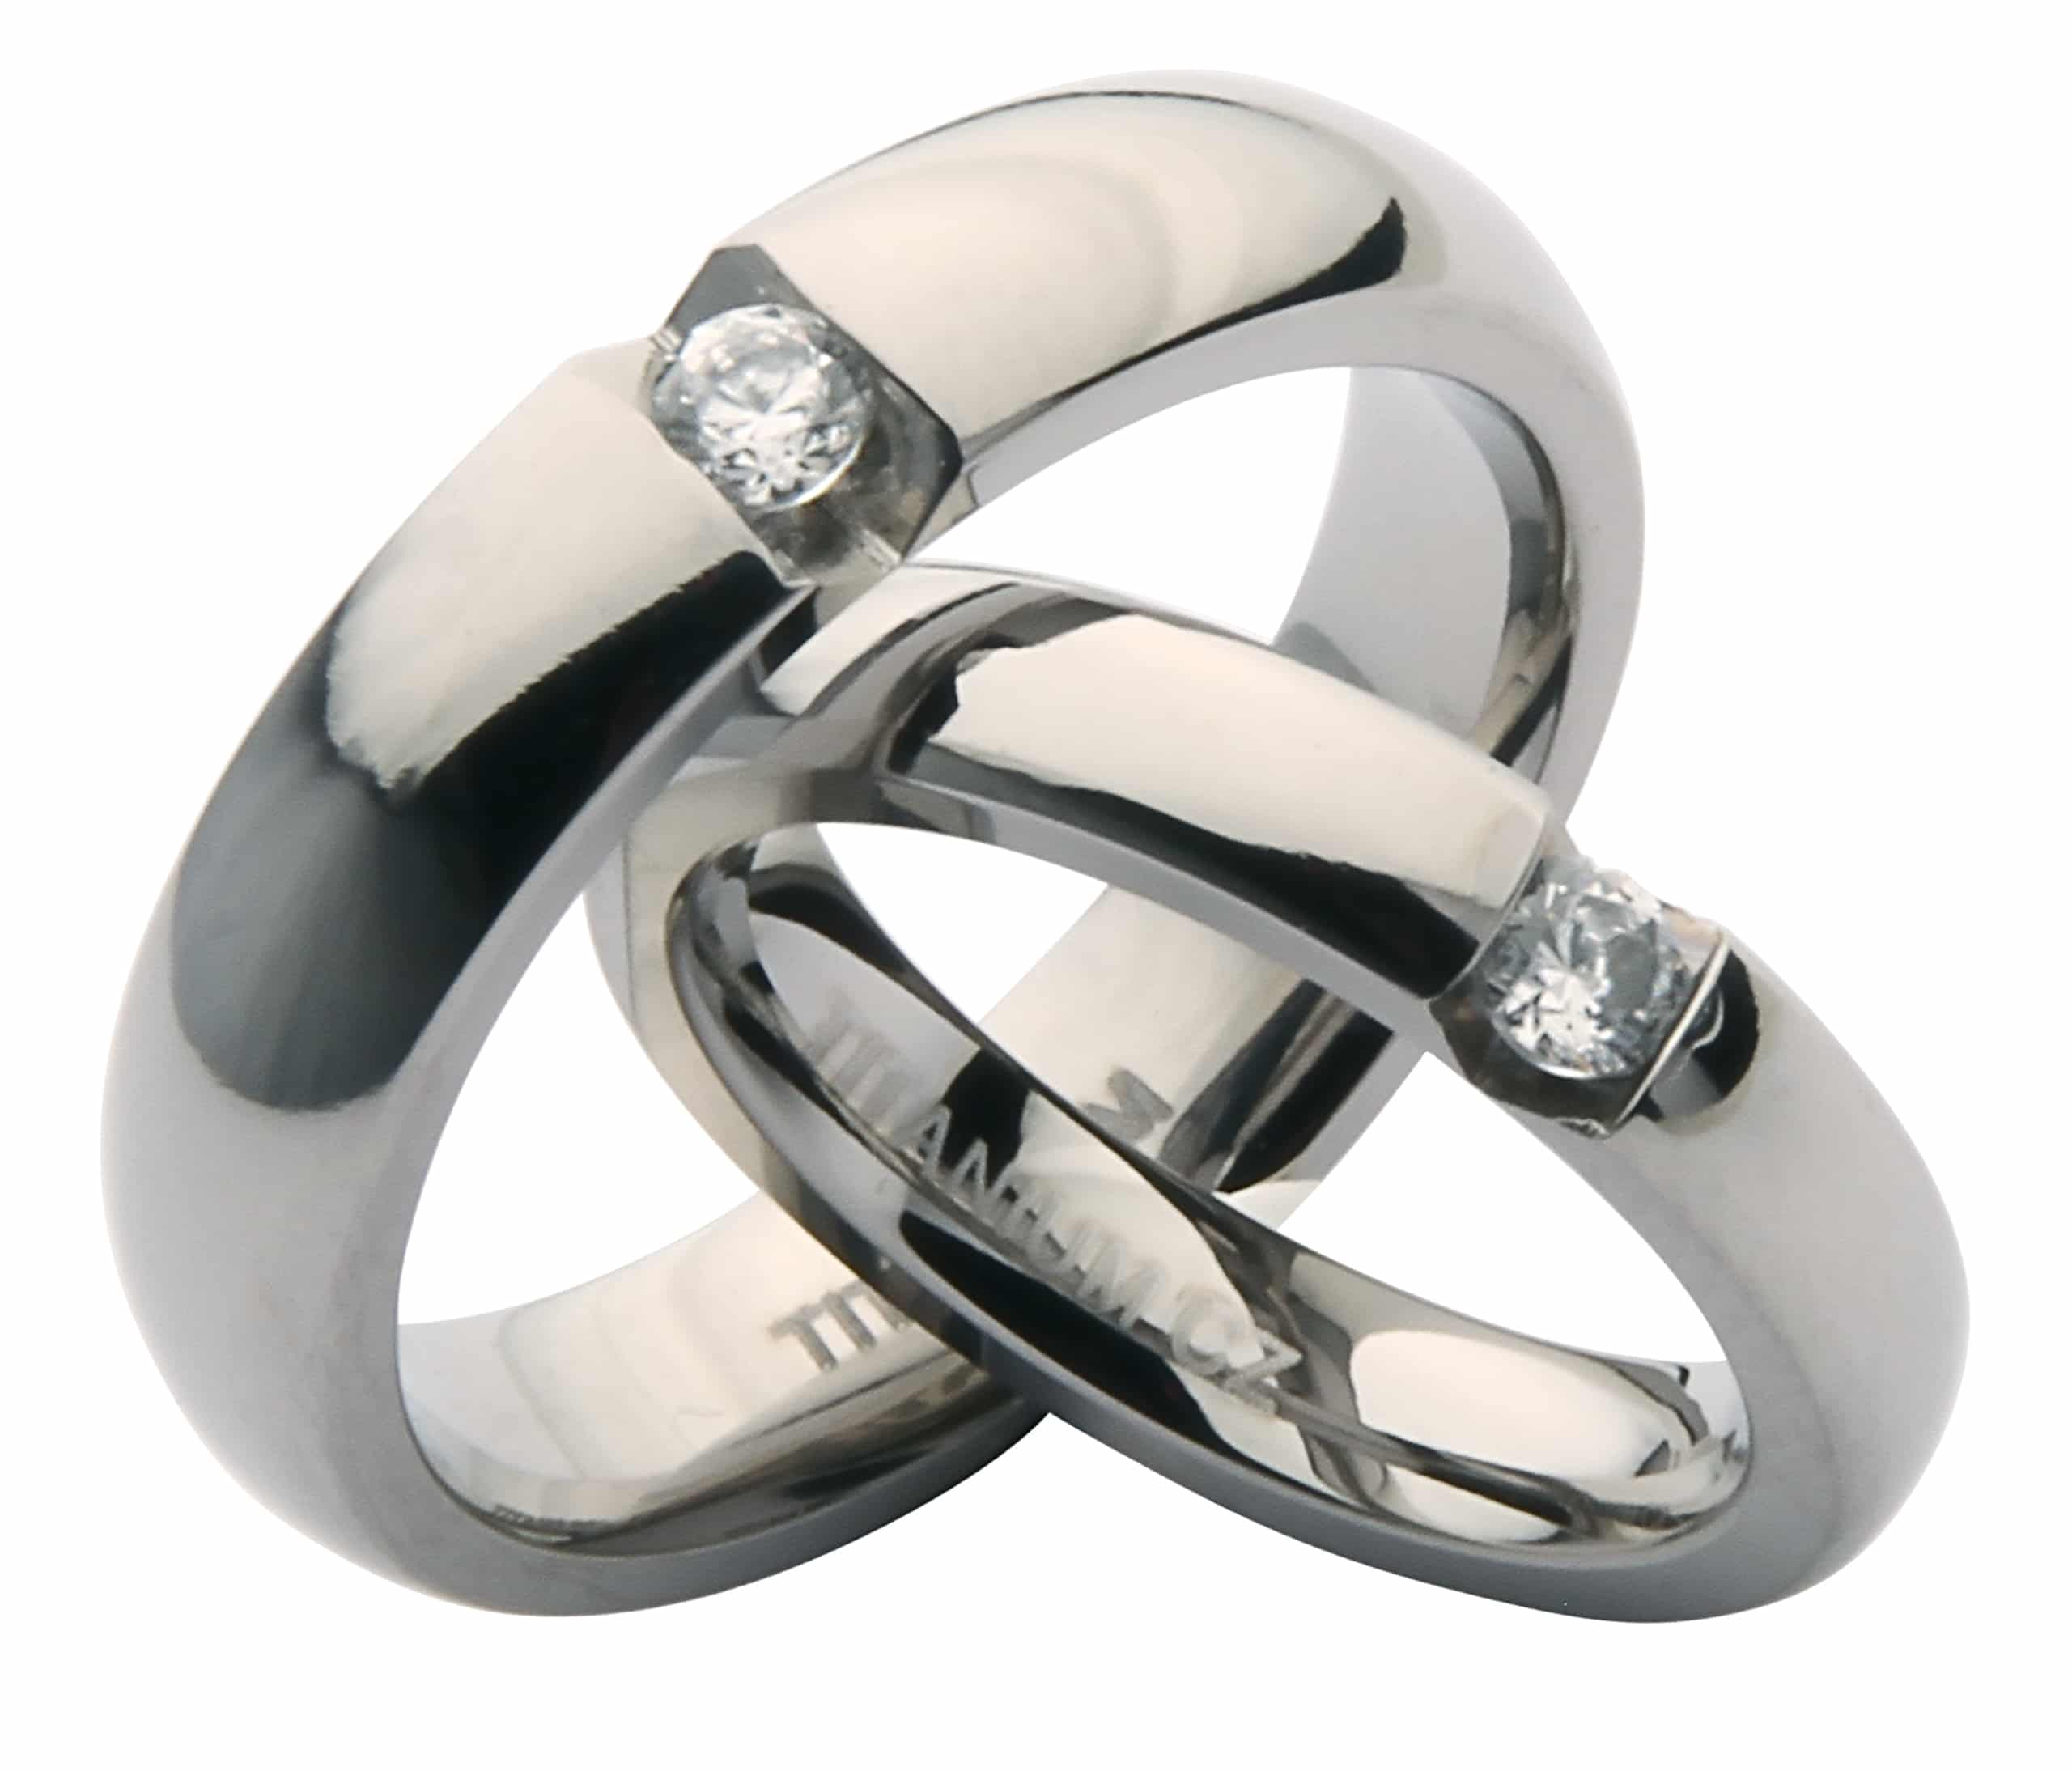 vhis and Hers Engagement Wedding Rings